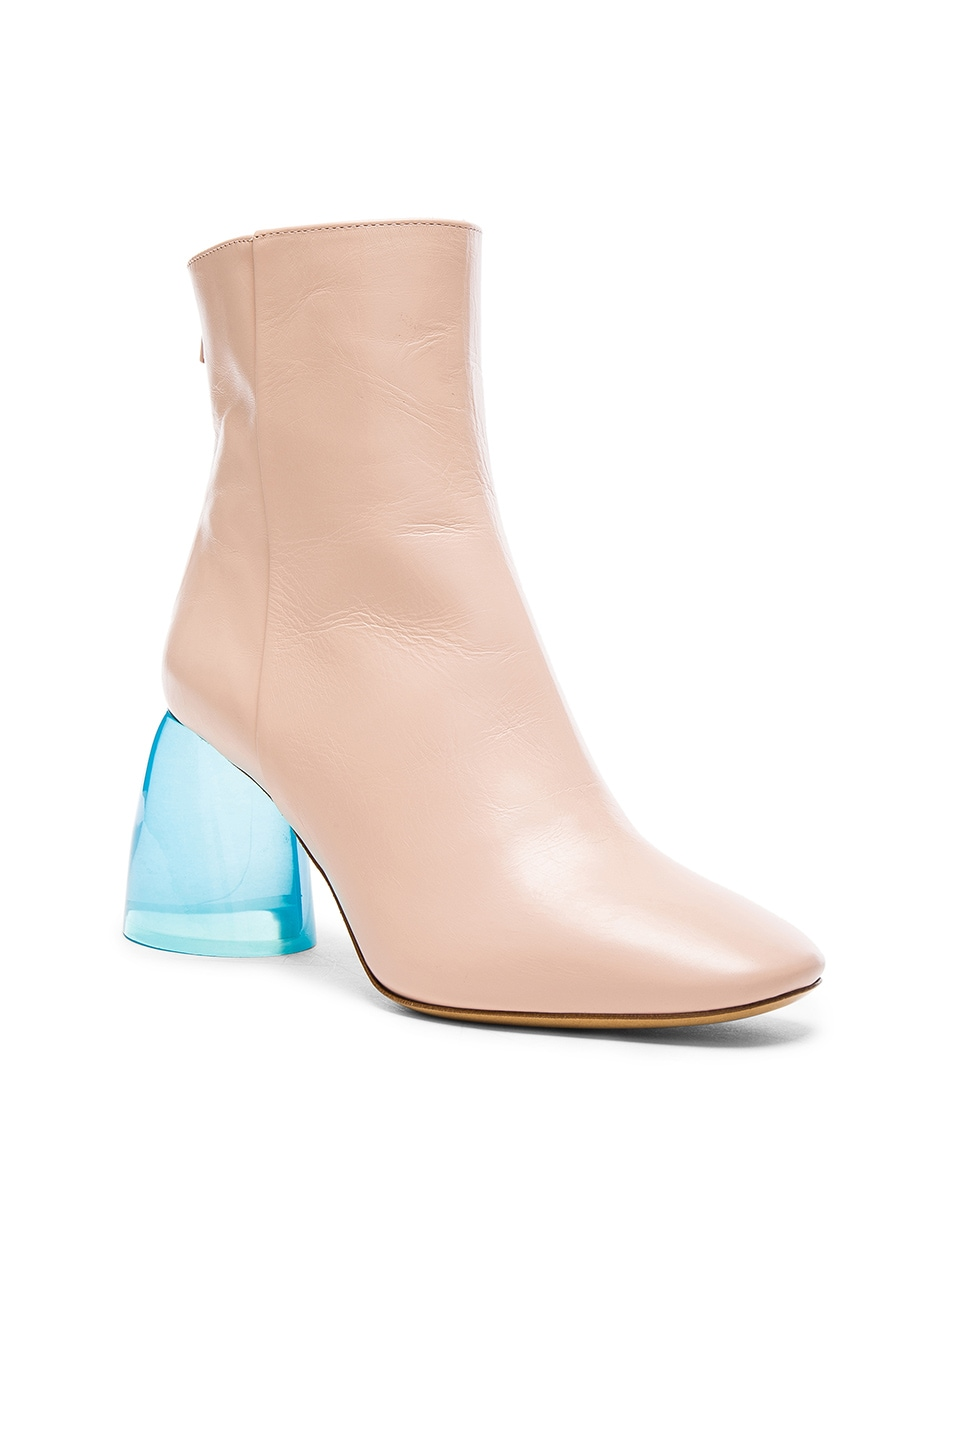 Image 2 of Ellery Leather Sacred Booties in Nude & Aqua